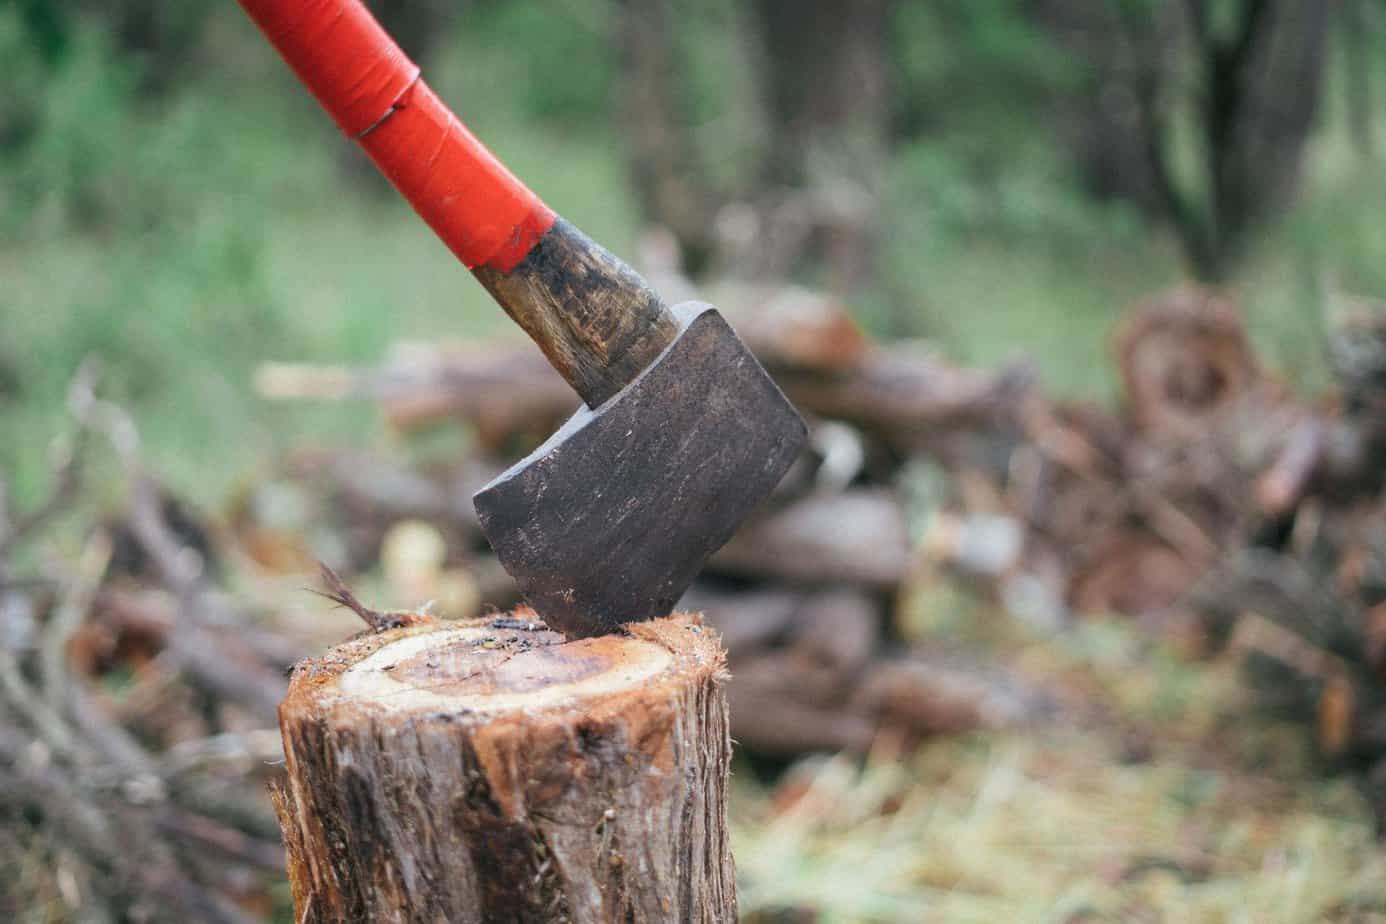 securing the best wood for fire and shelter